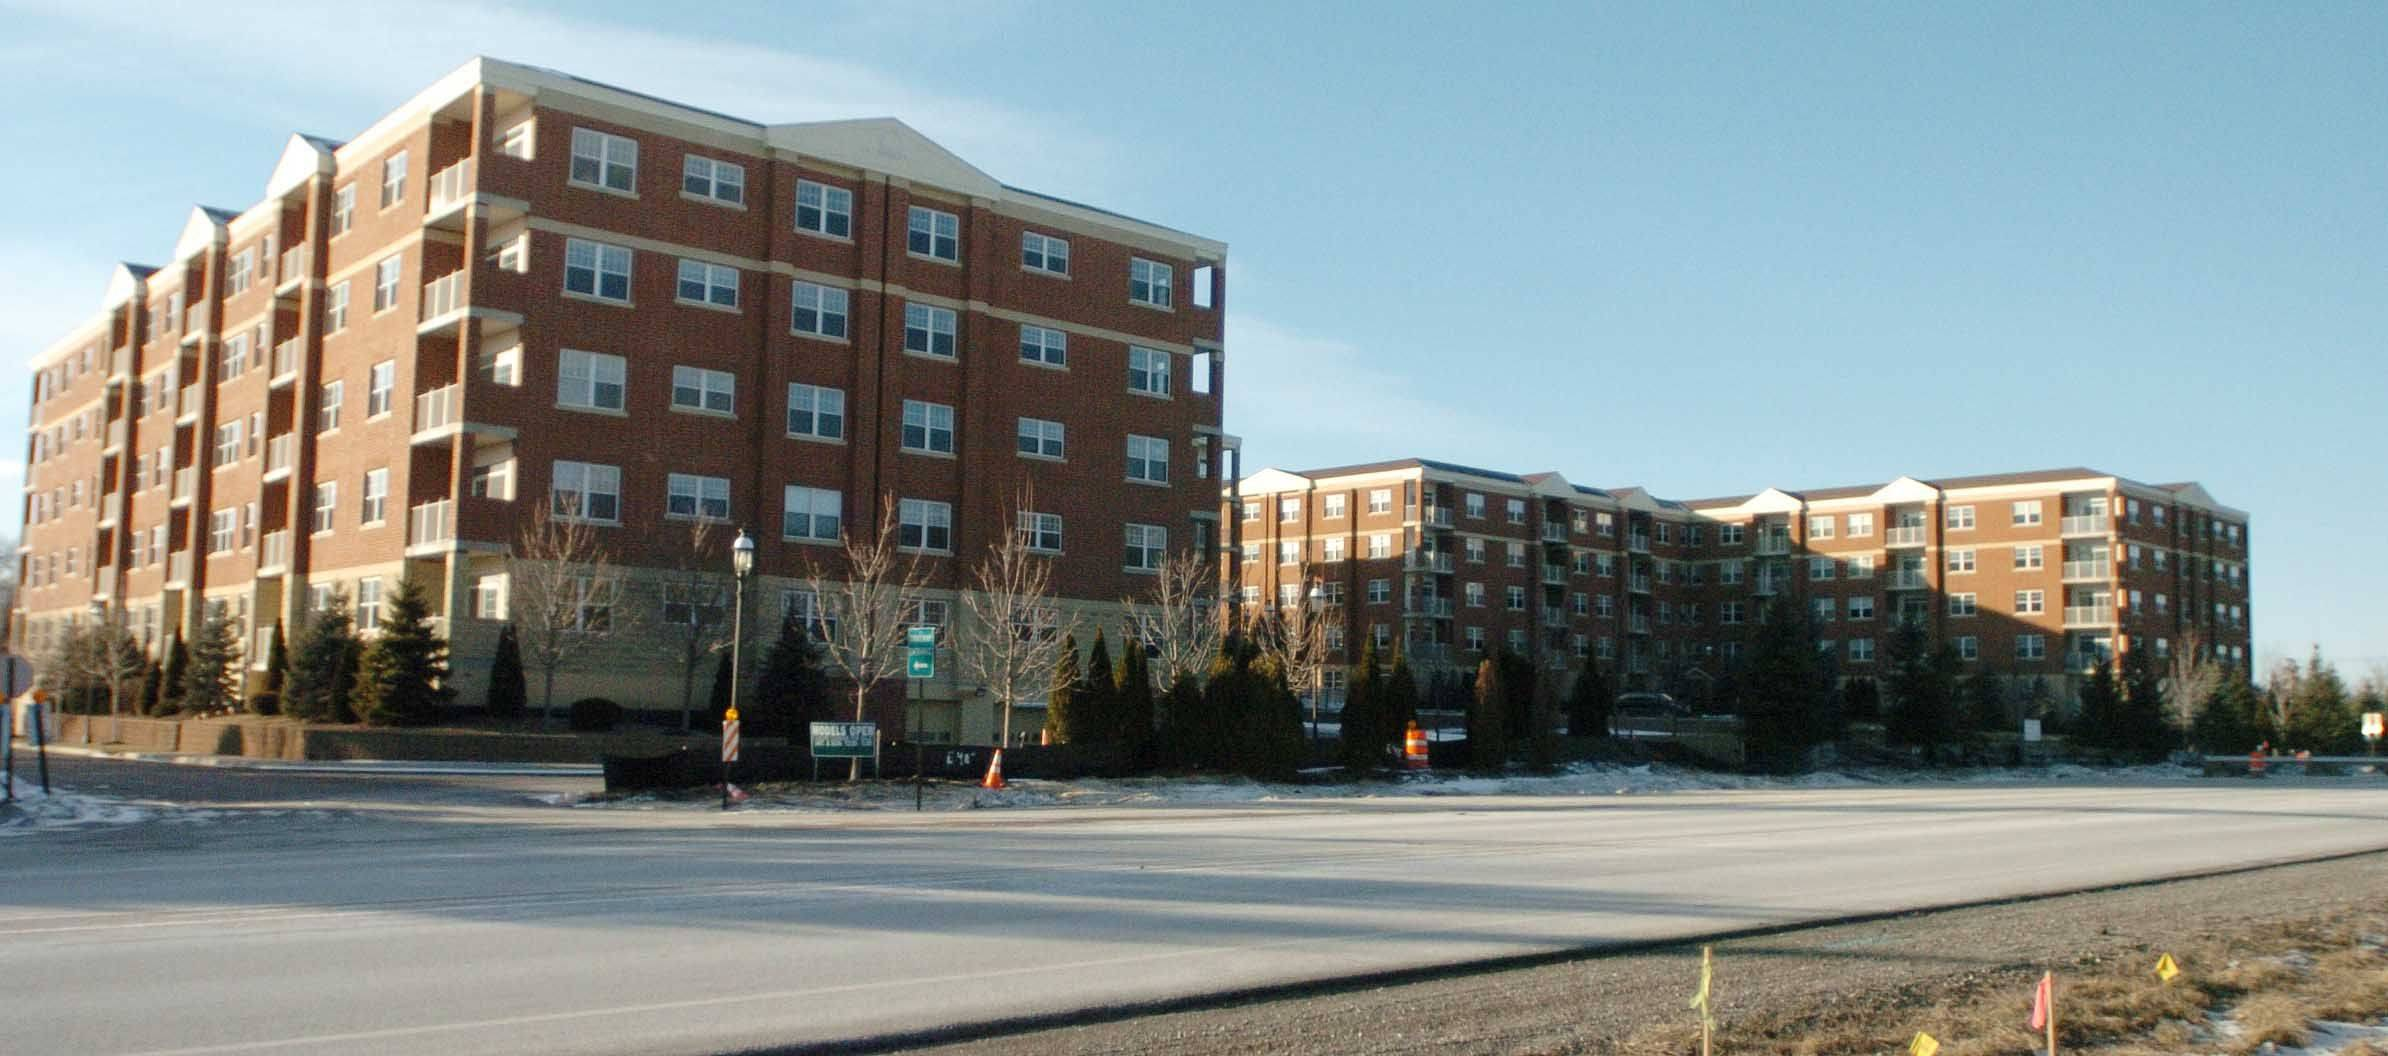 Reverse condo conversion raises ire in Itasca